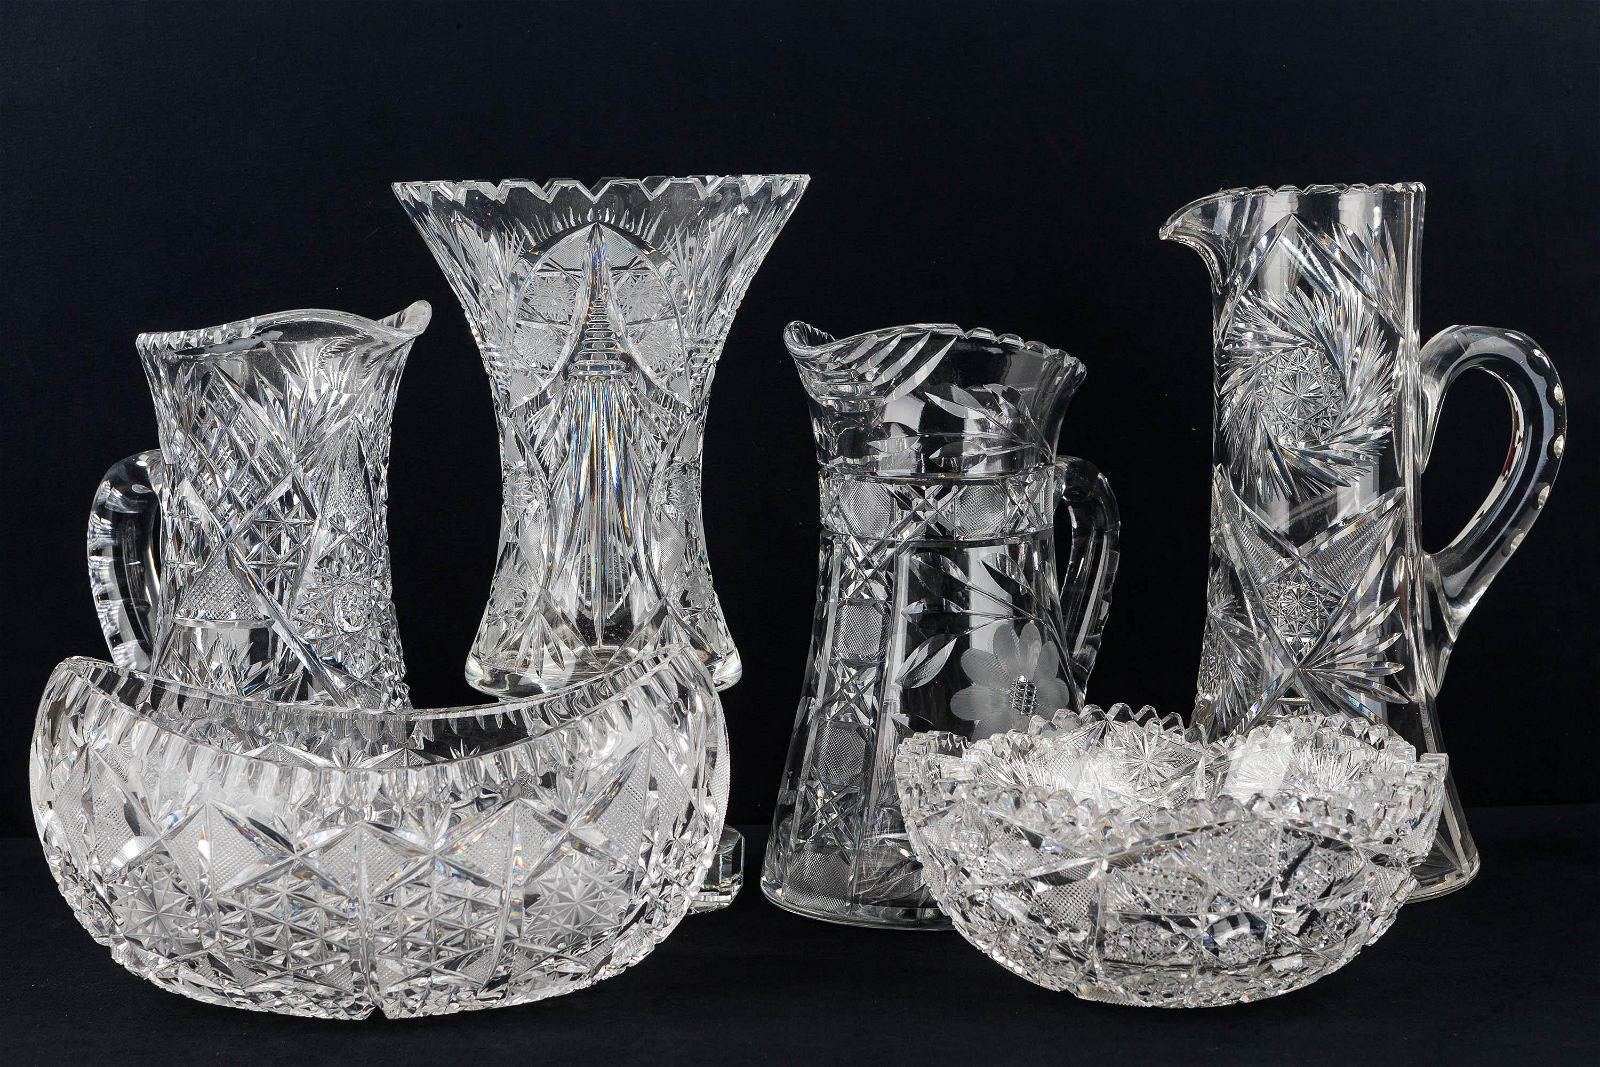 Grouping of Large Cut Glass and Crystal Items